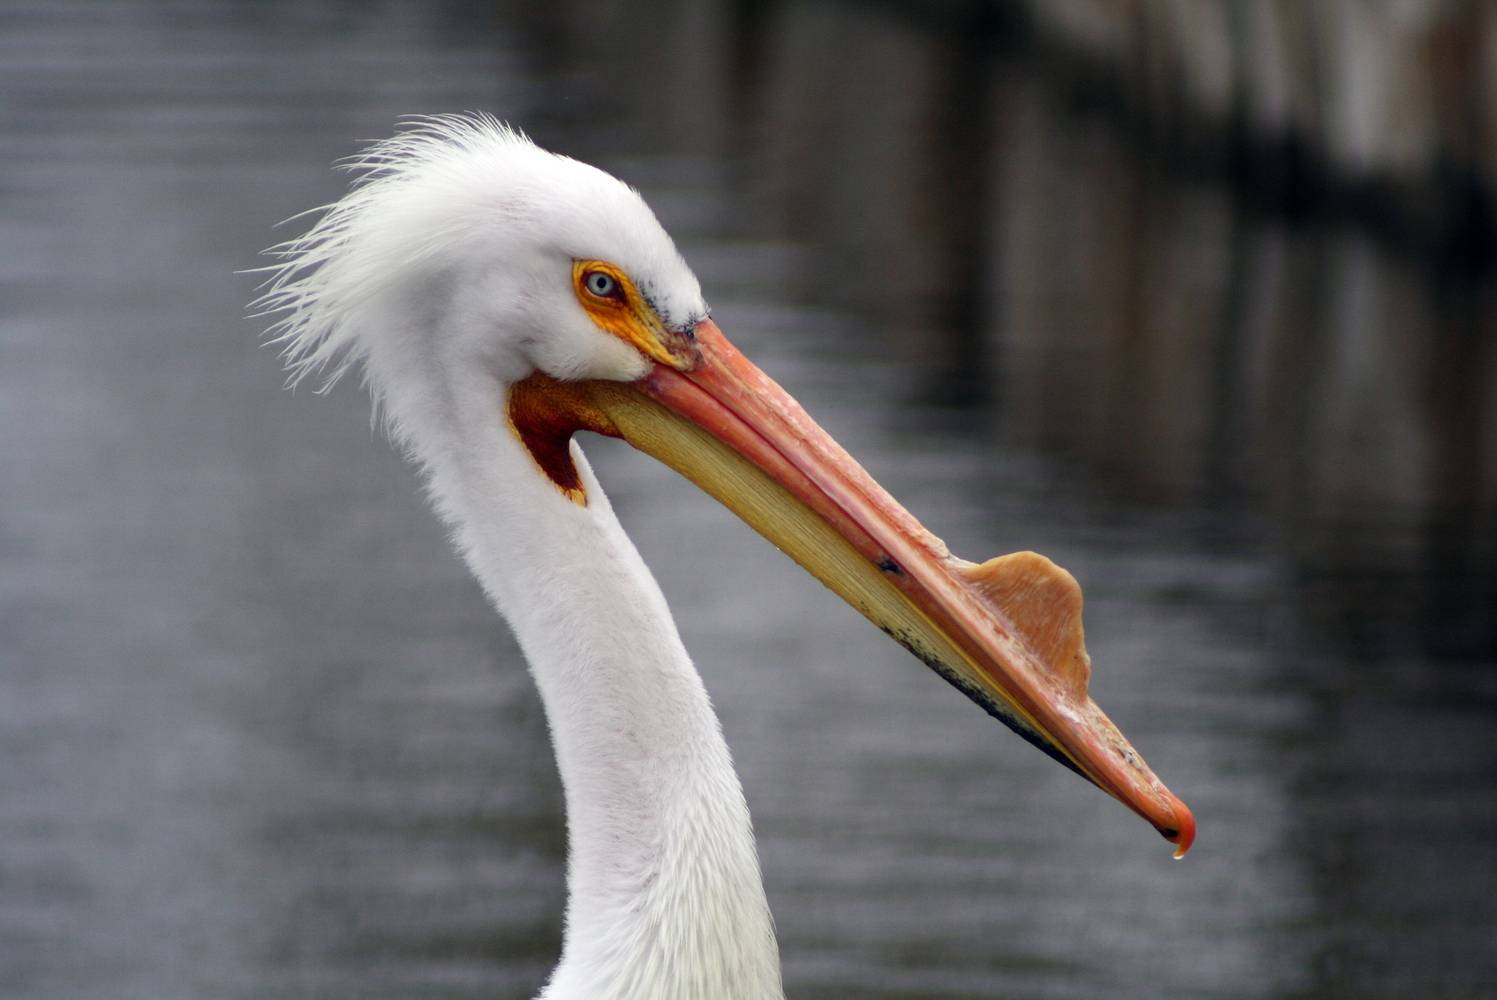 Pelican photographed at Wascana Park Bird Sanctuary by Belinda Harrow